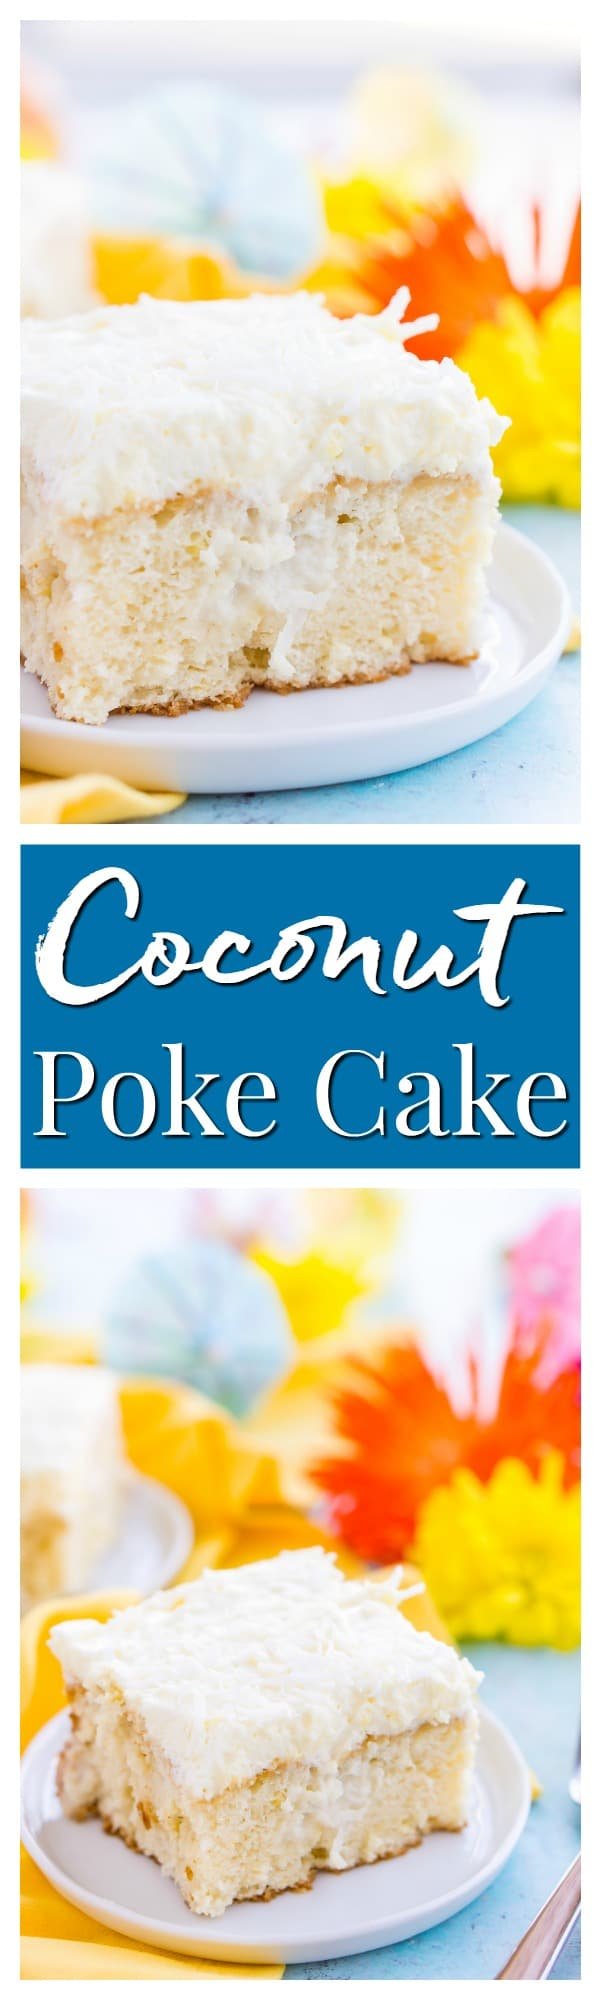 This Coconut Poke Cake is easy to make, loaded with coconut flavor, and the perfect dessert for your spring and summer celebrations. via @sugarandsoulco